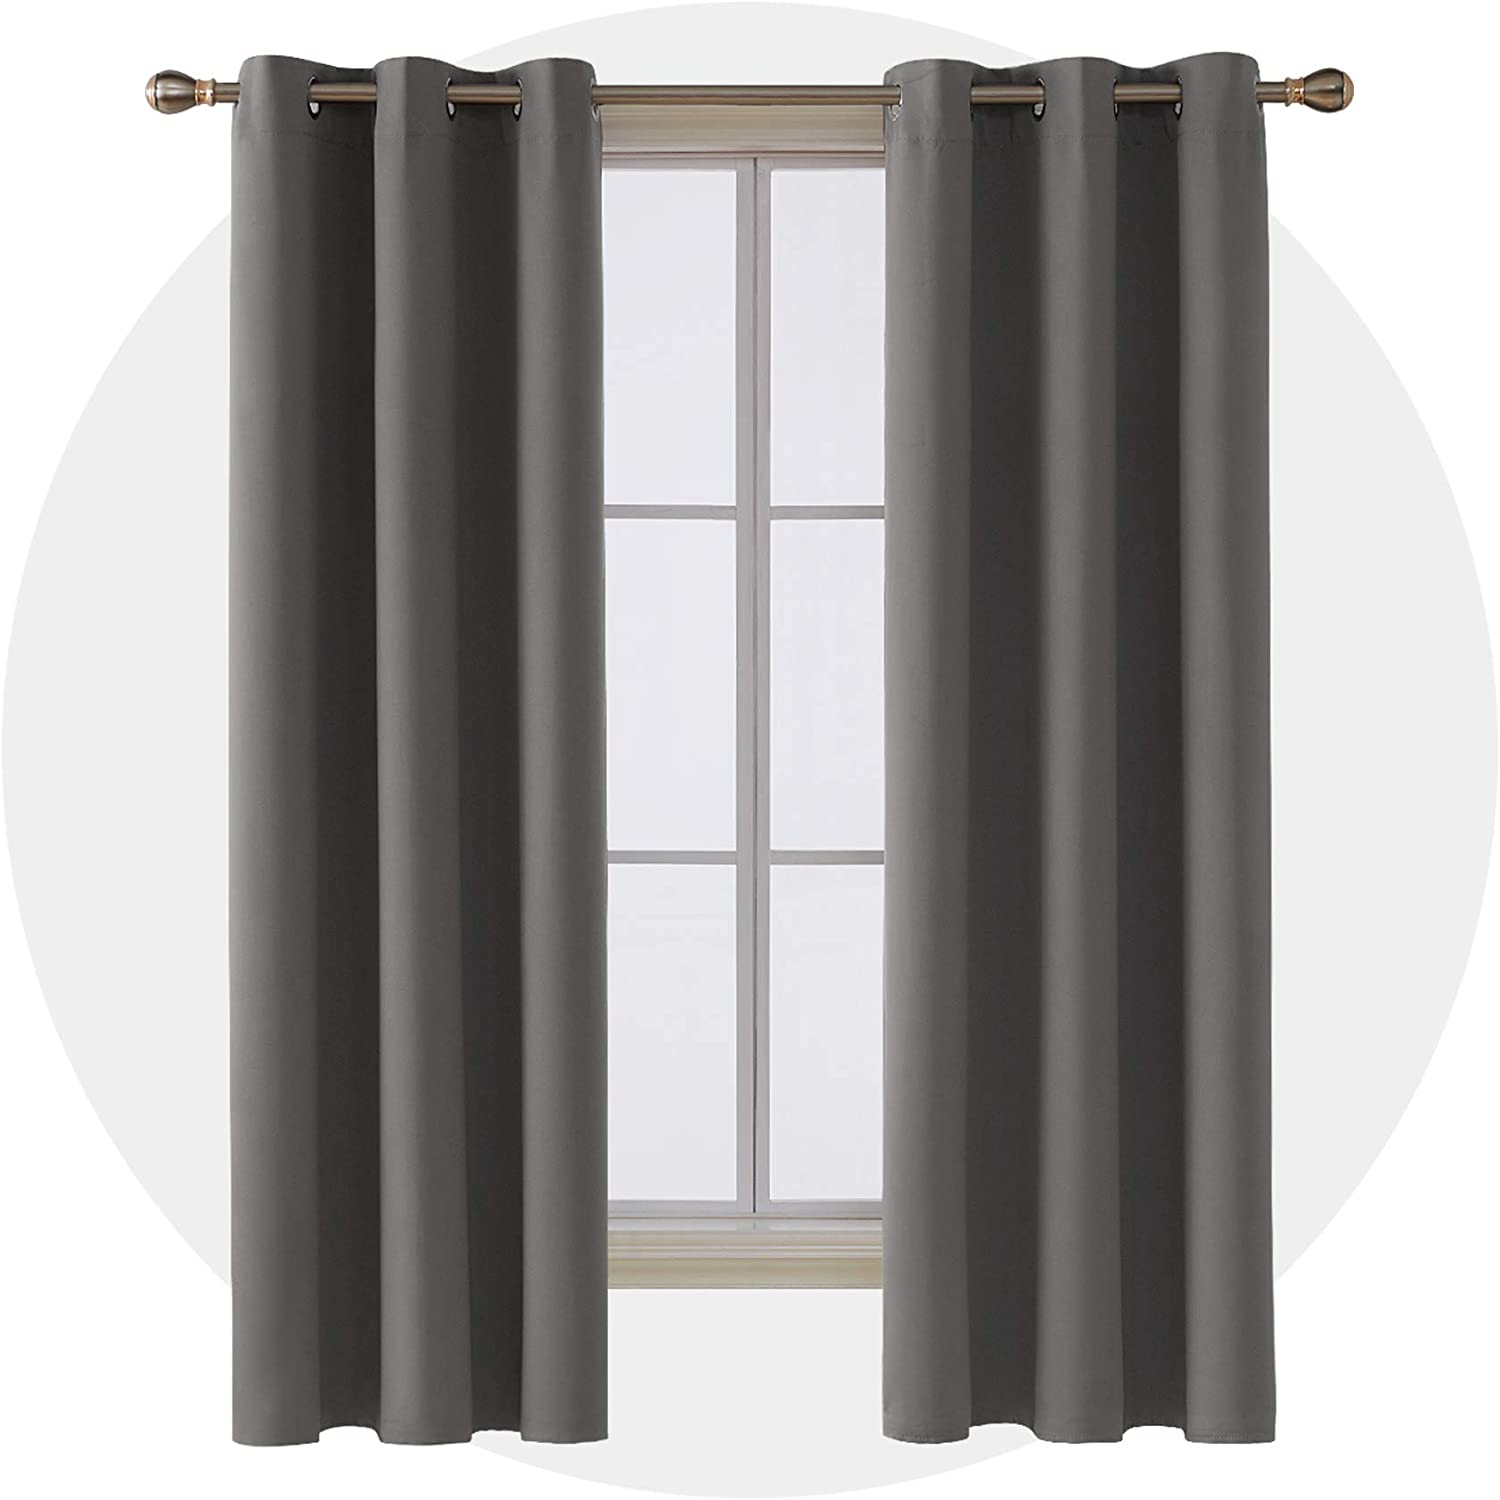 Deconovo Room Darkening Thermal Insulated Blackout Grommet Window Curtain for Bedroom, Light Grey,42x84-Inch,1 Panel